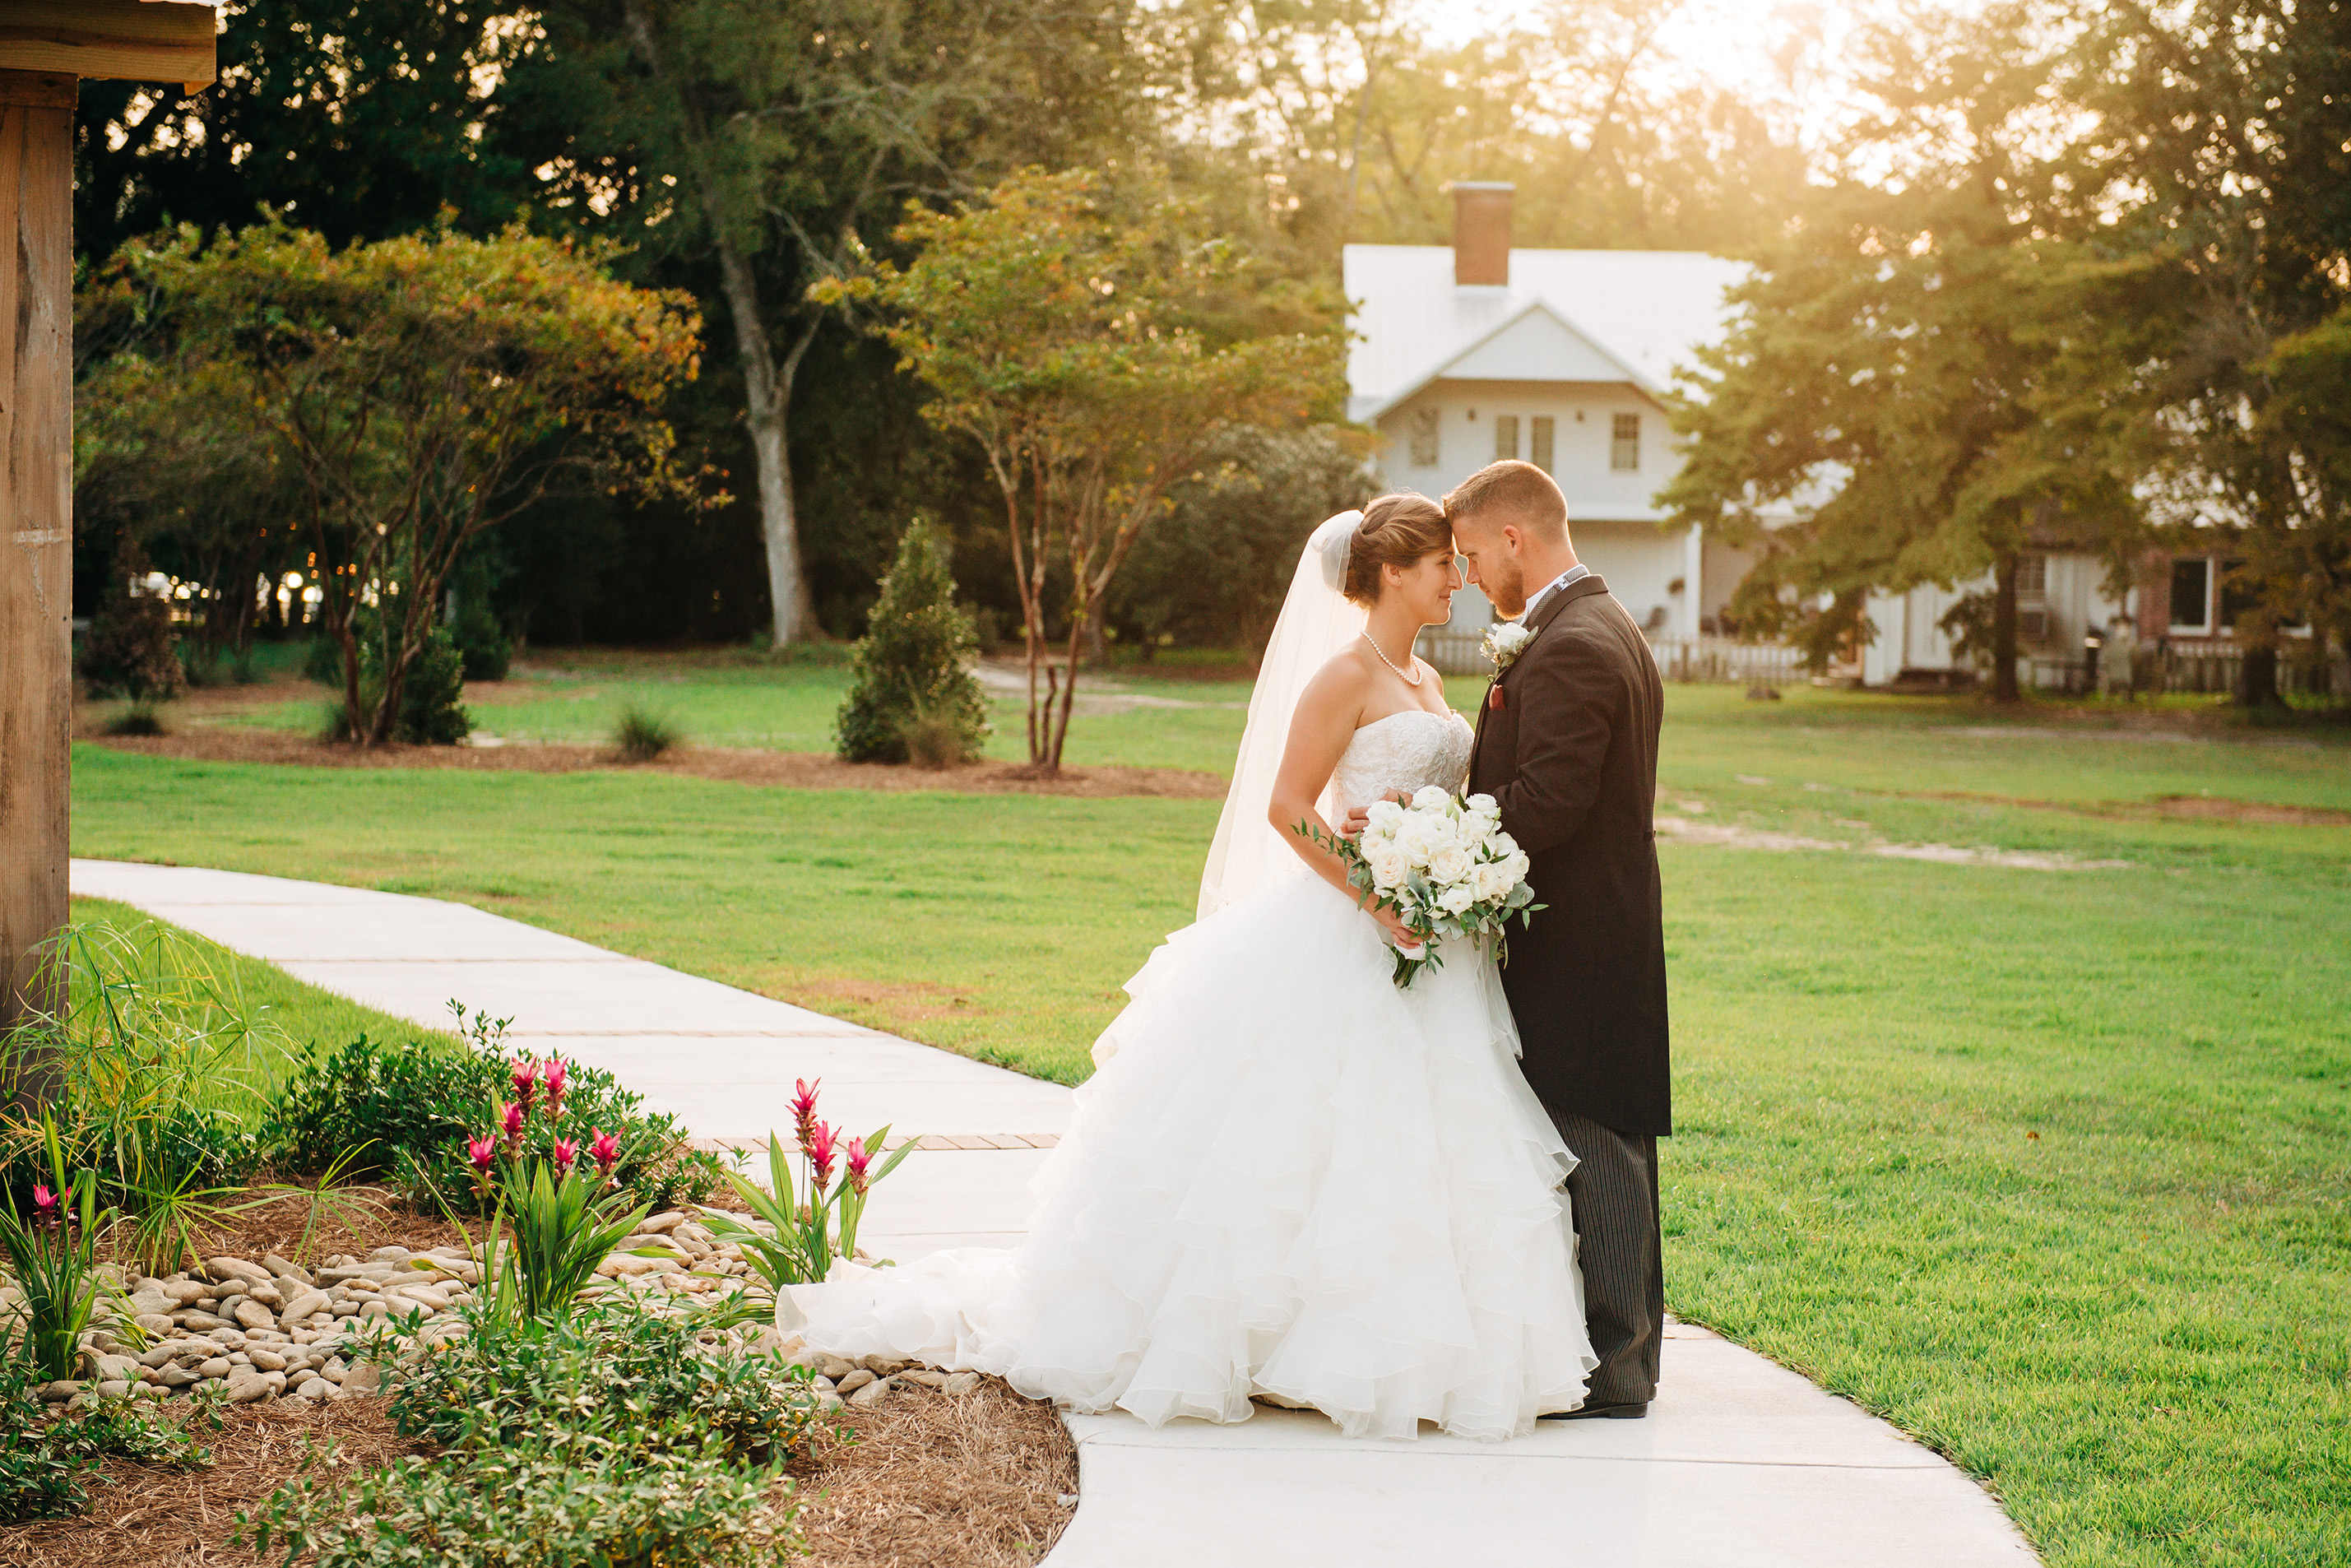 Wedding couple looking into each others eyes at Avirett Stephens Plantation in Richlands, North Carolina.